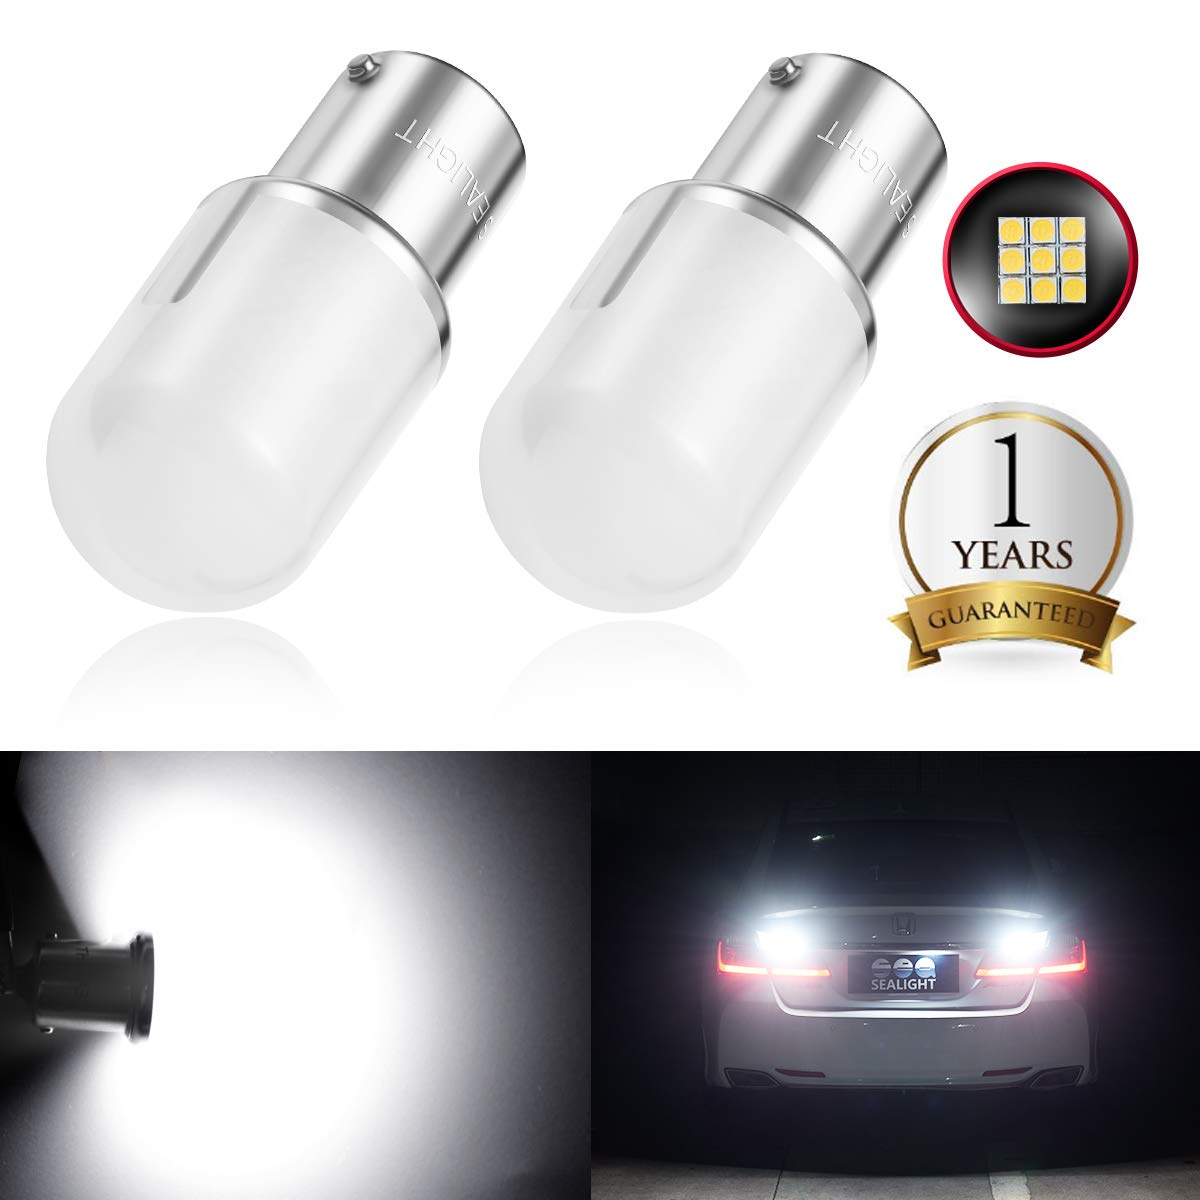 1141 1156 LED Bulbs Replacement for Reverse Backup Light Super Bright SEALIGHT 1003 BA15S 7506 12V SMD 3030 Chipsets 6000K Xenon White(Pack of 2)